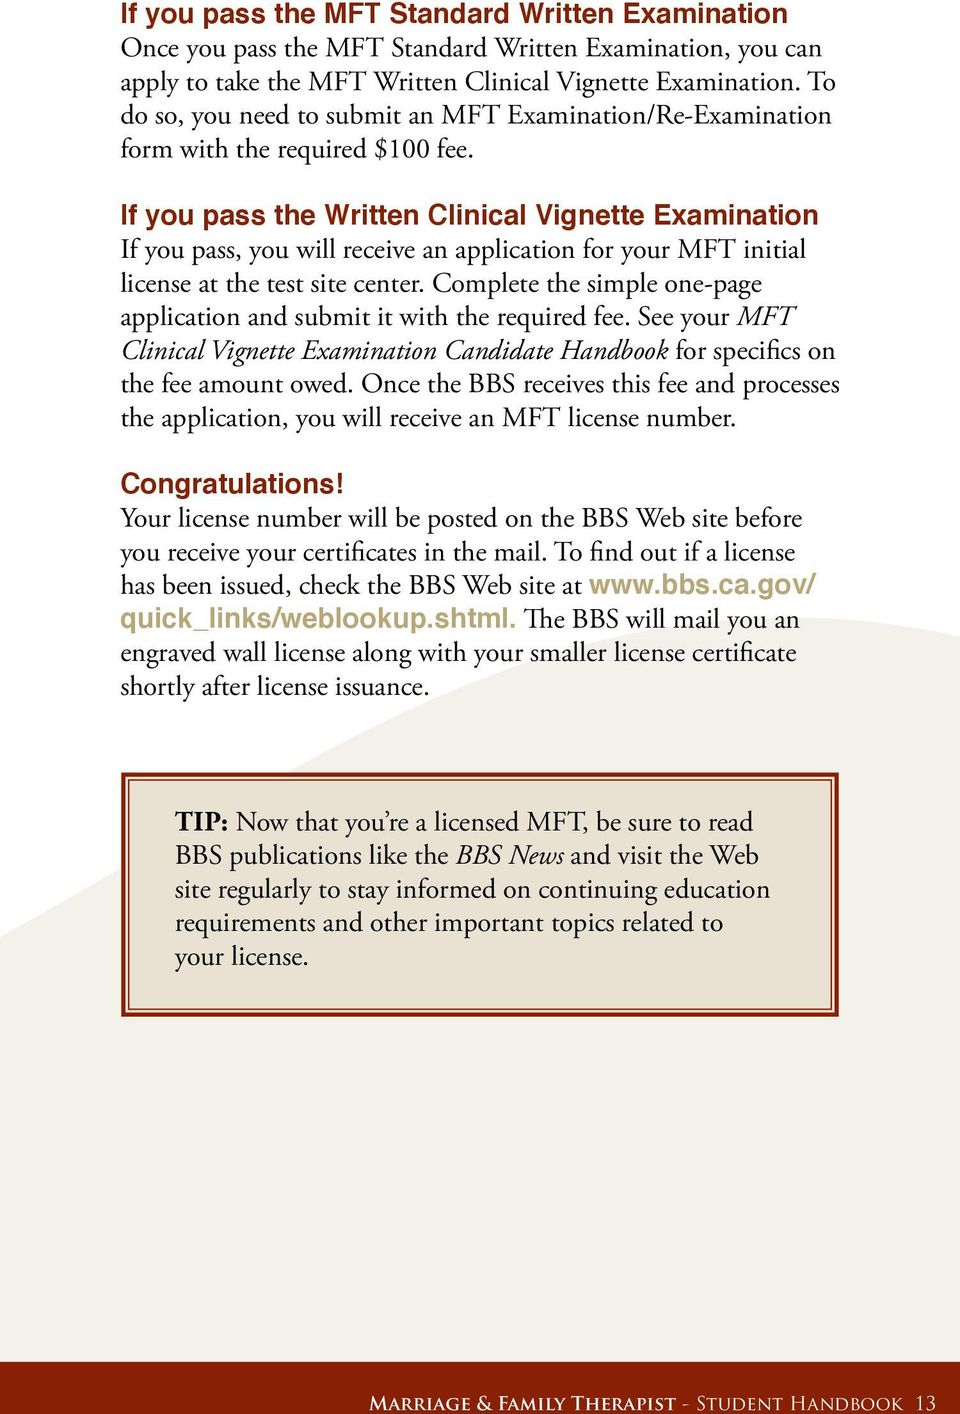 If you pass the Written Clinical Vignette Examination If you pass, you will receive an application for your MFT initial license at the test site center.